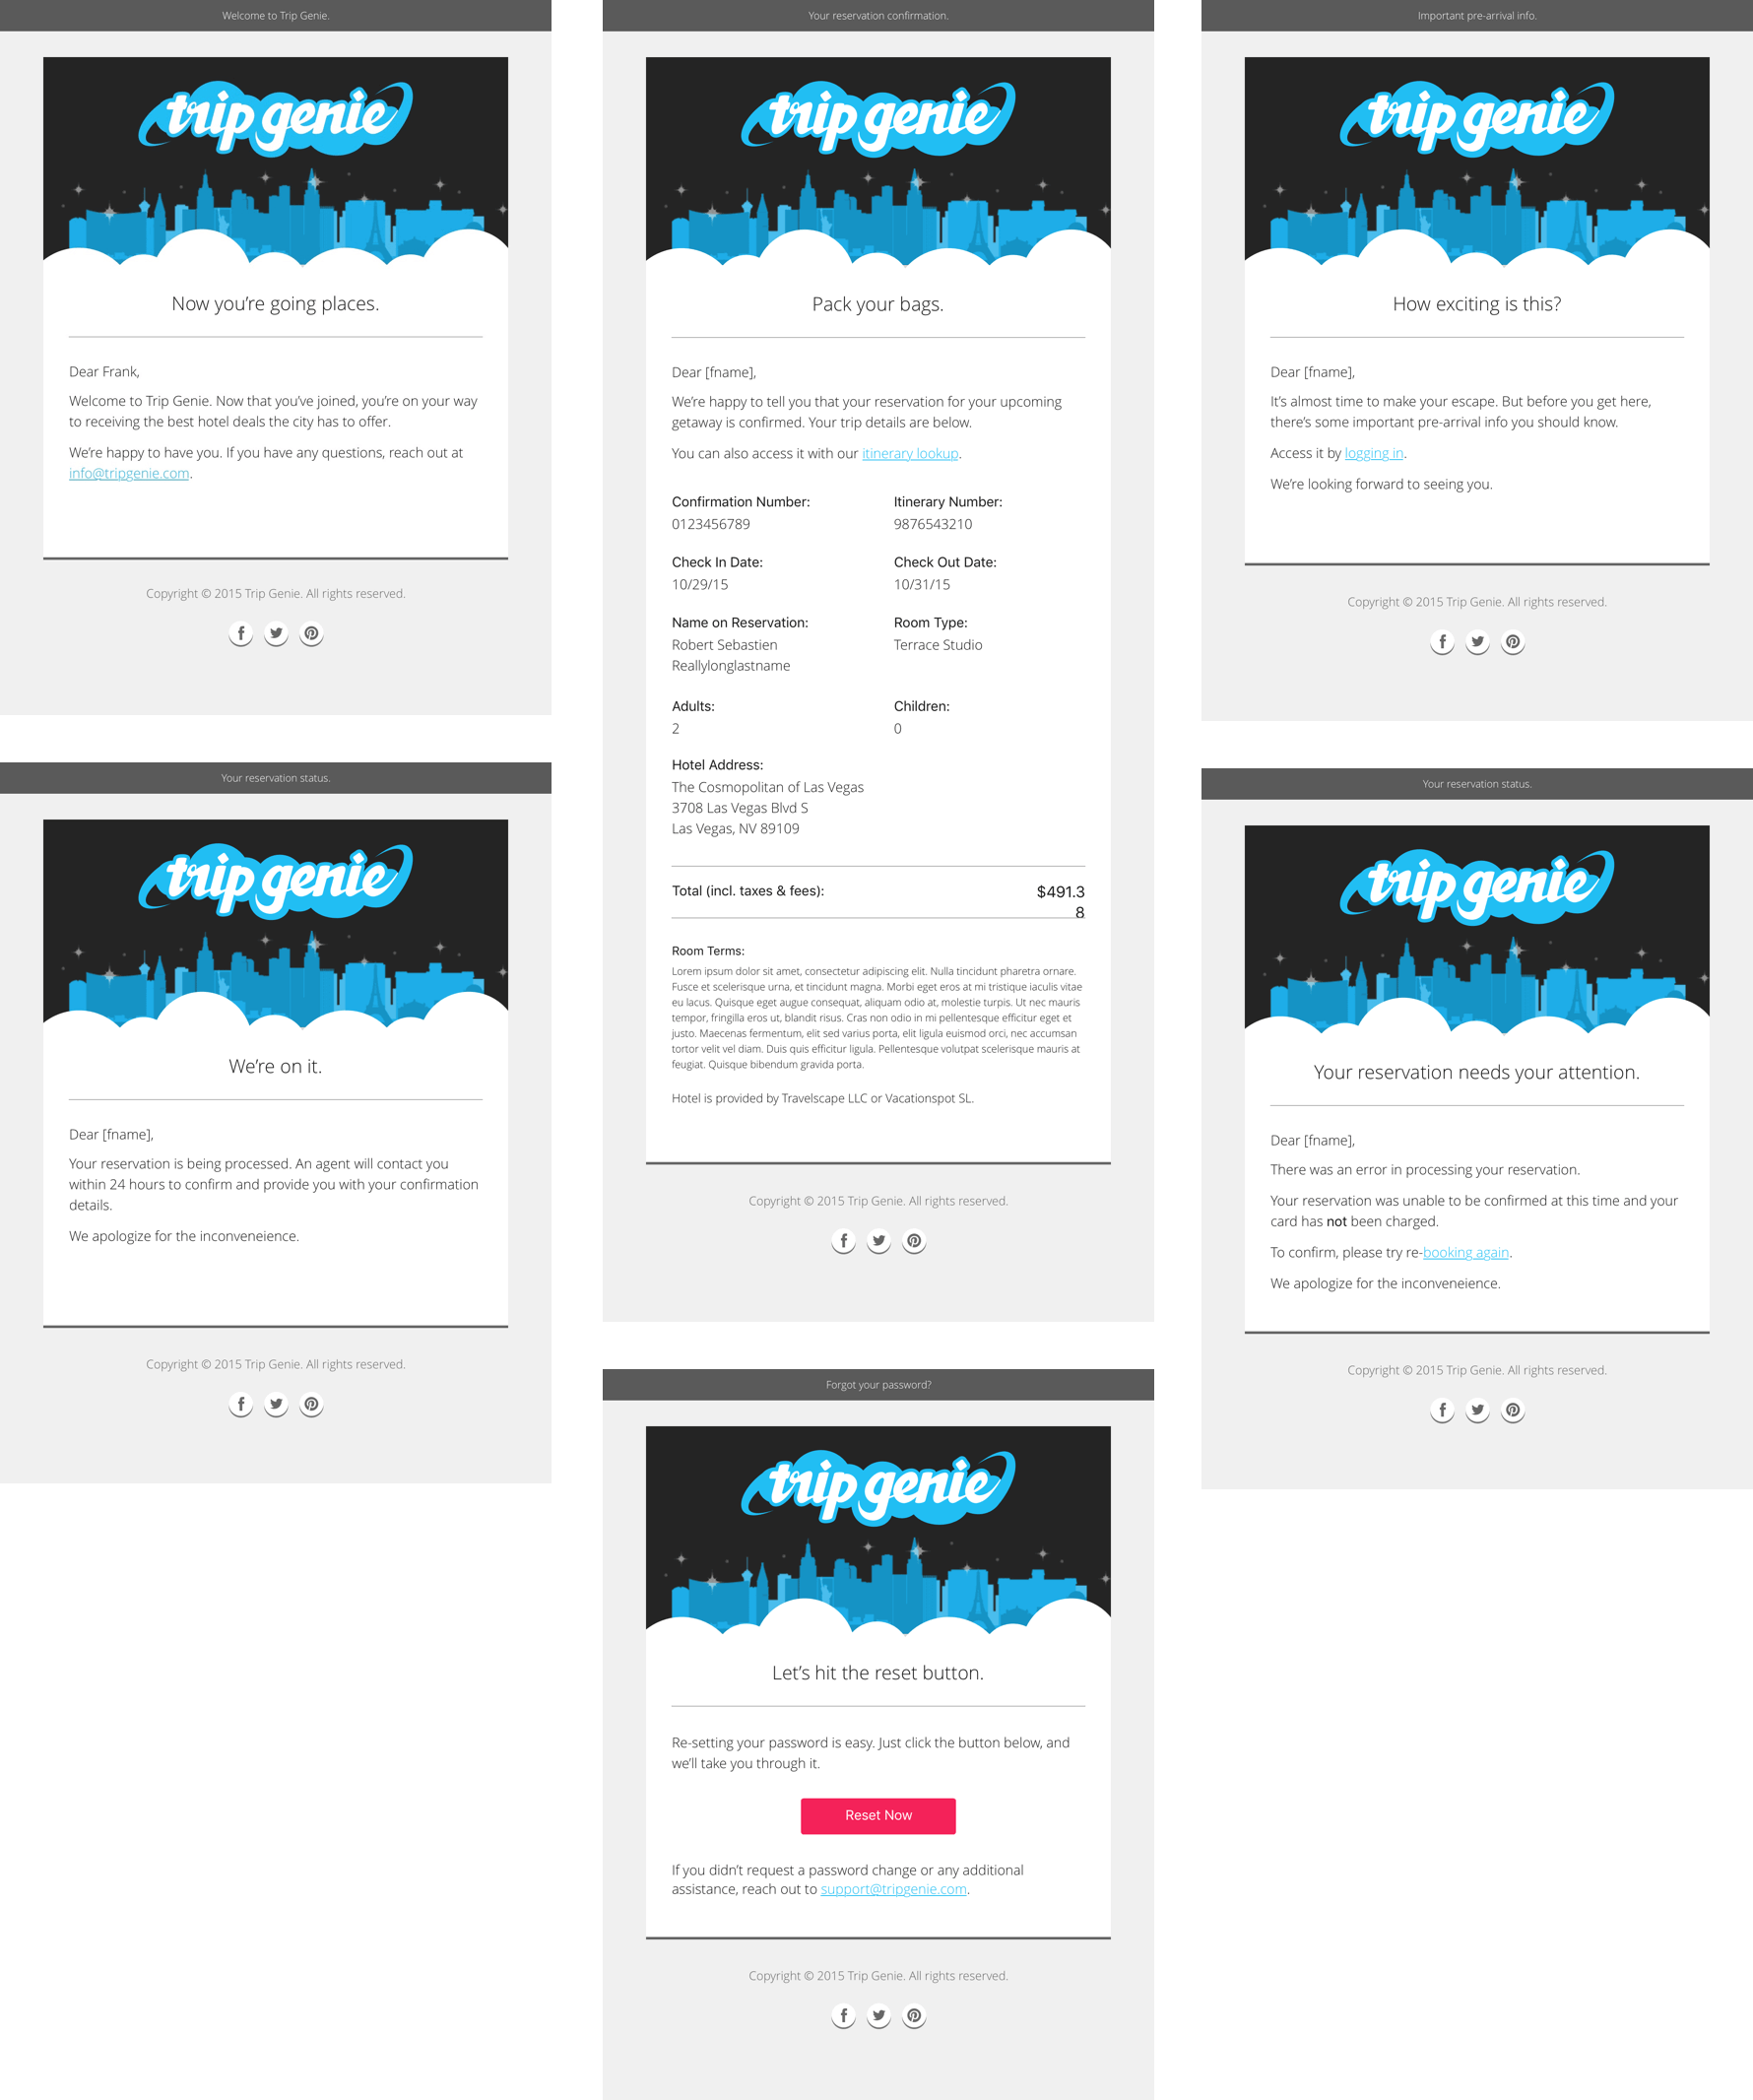 Examples of the lifecycle of hotel reservation emails.